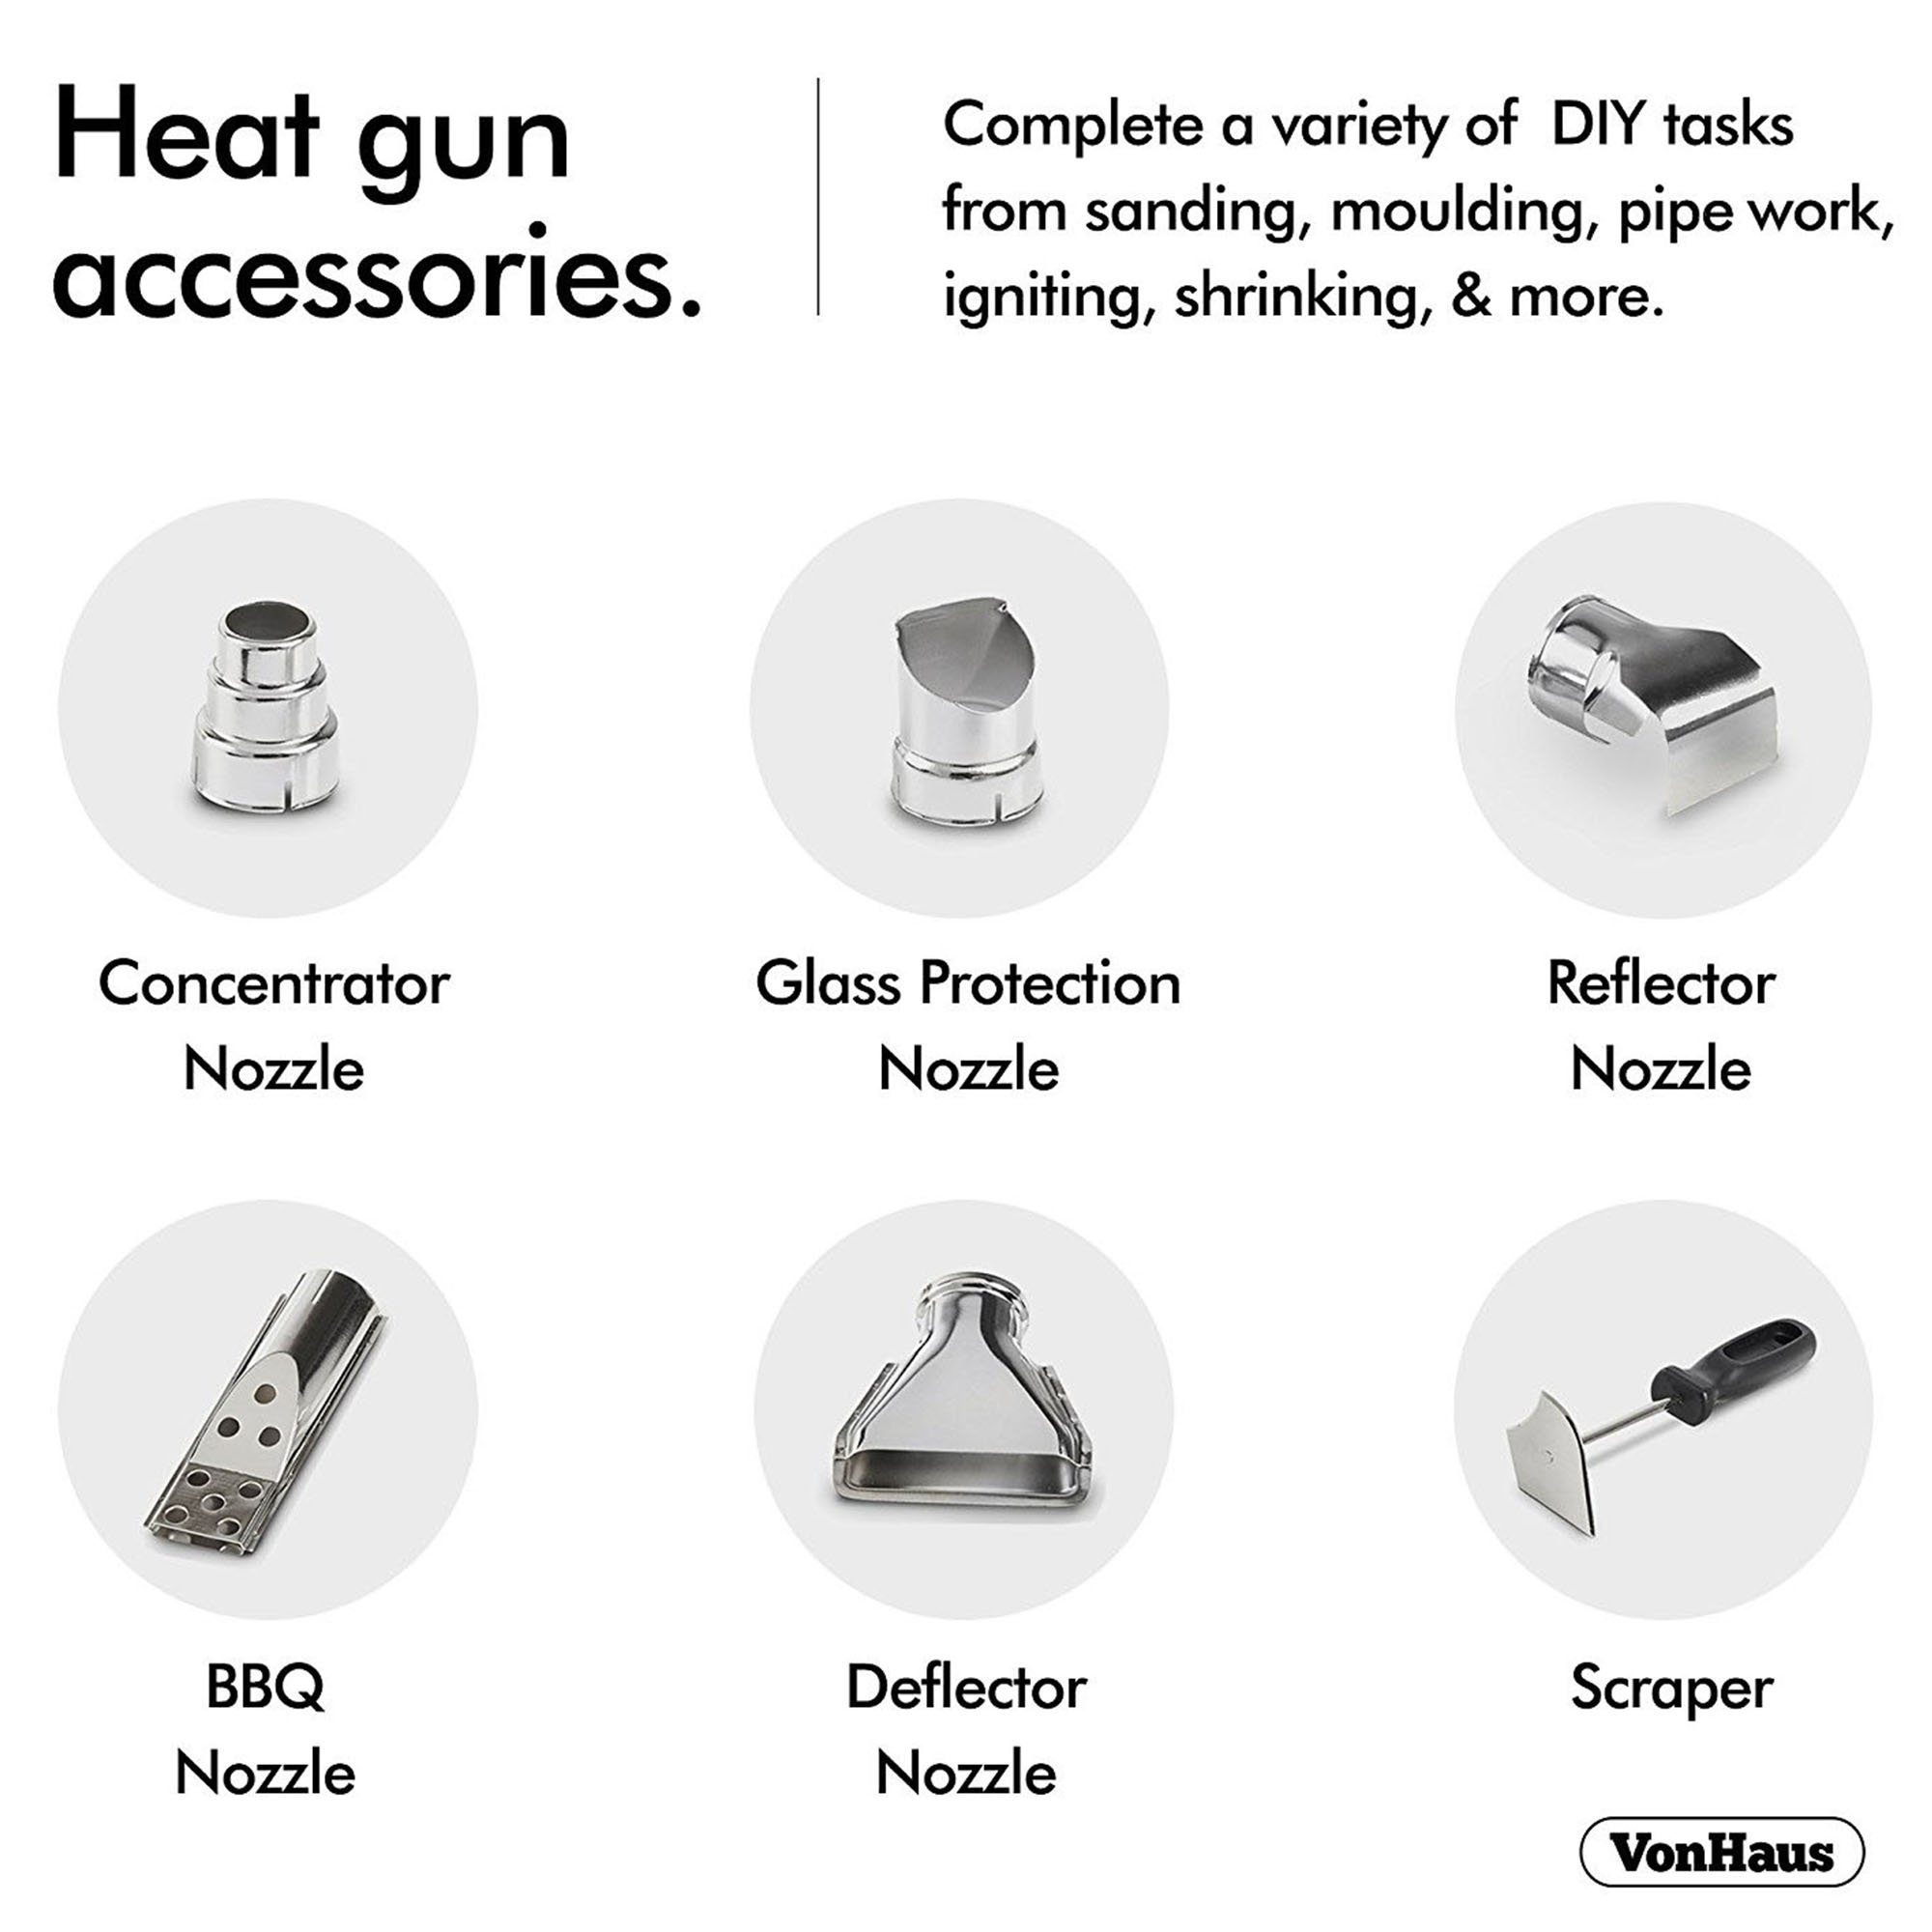 VonHaus 1500W Heat Gun Hot Air Gun with Variable Temperature Control, 3-Position Adjustable Handle and 5 Nozzle Attachments for Shrinking PVC, Removing Paint, Bending Pipes, BBQ Grills by VonHaus (Image #4)